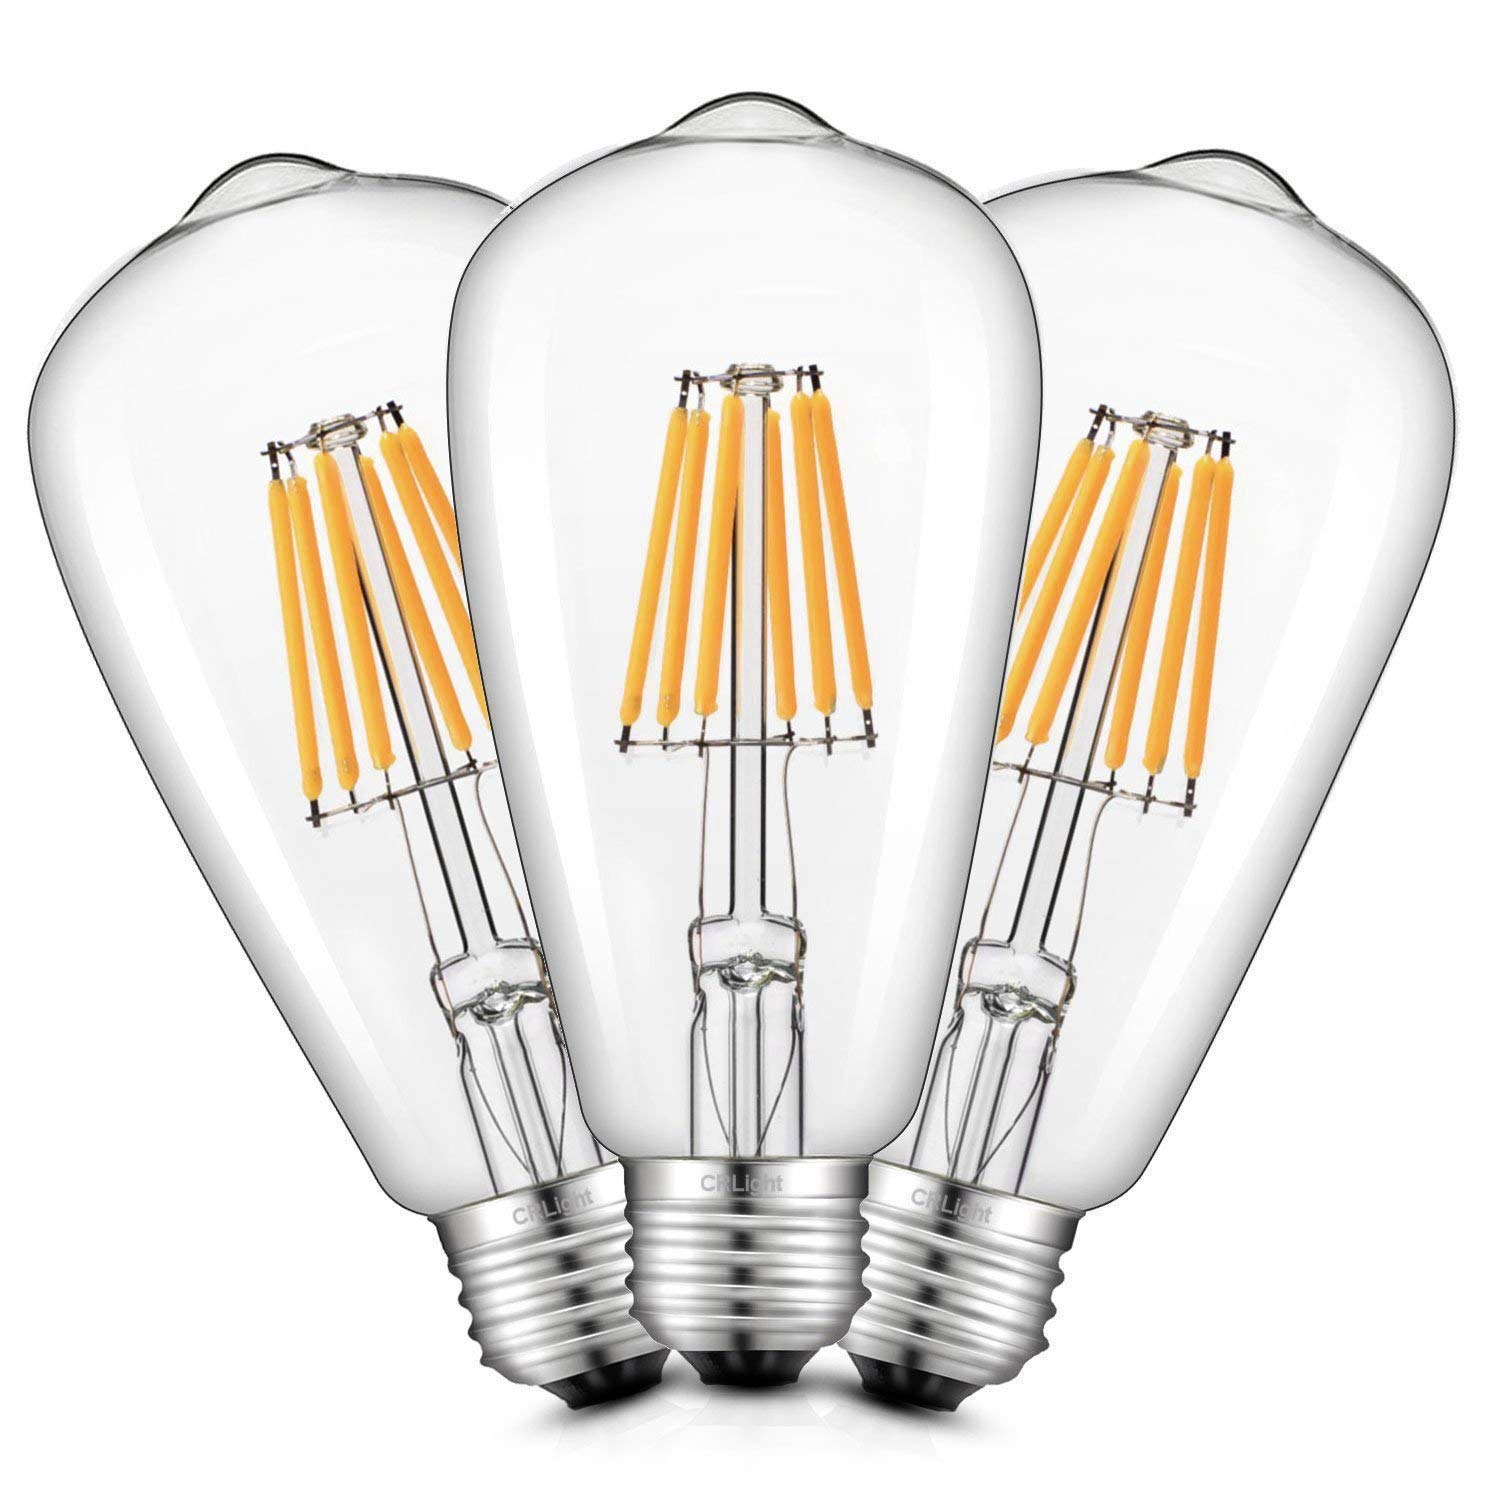 Crlight 6w Dimmable 2300k Ultra Warm Color Amber Glow Edison Style 300pwh Diva 300w Electronic Low Voltage Single Pole Dimmer In White Vintage Led Filament Light Bulb 600lm E26 Medium Base Lamp St21st64 Antique Shape